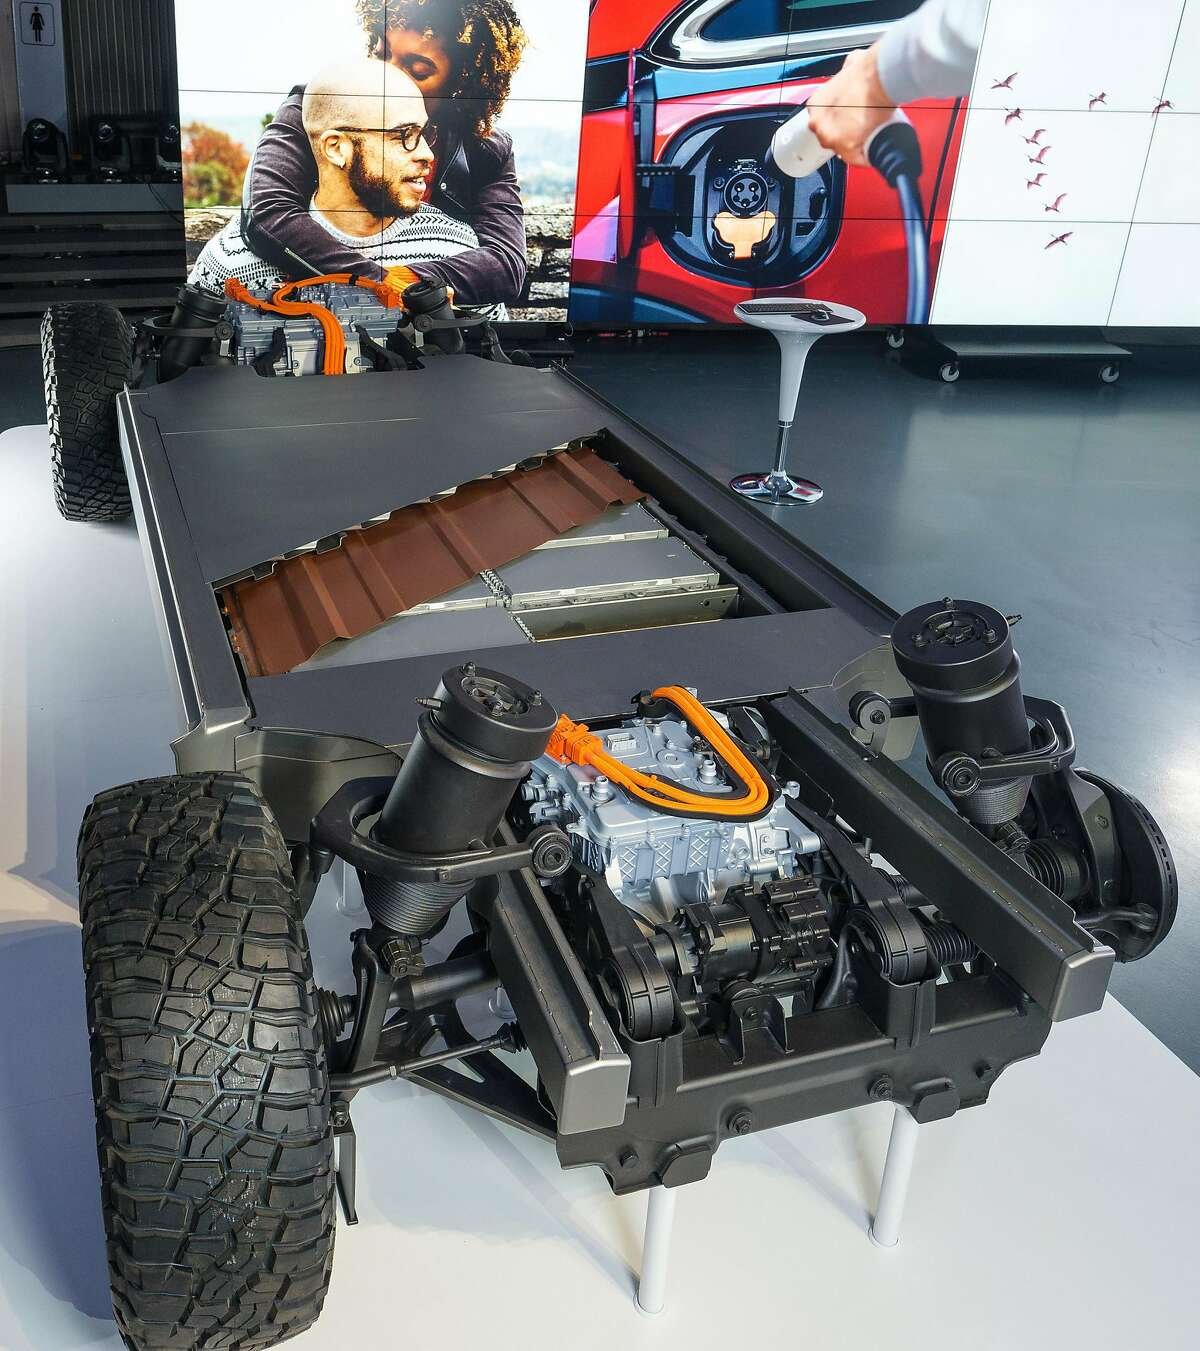 General Motors reveals its all-new modular platform and battery system, Ultium, Wednesday, March 4, 2020 at the Design Dome on the GM Tech Center campus in Warren, Michigan. (Steve Fecht/General Motors/TNS)